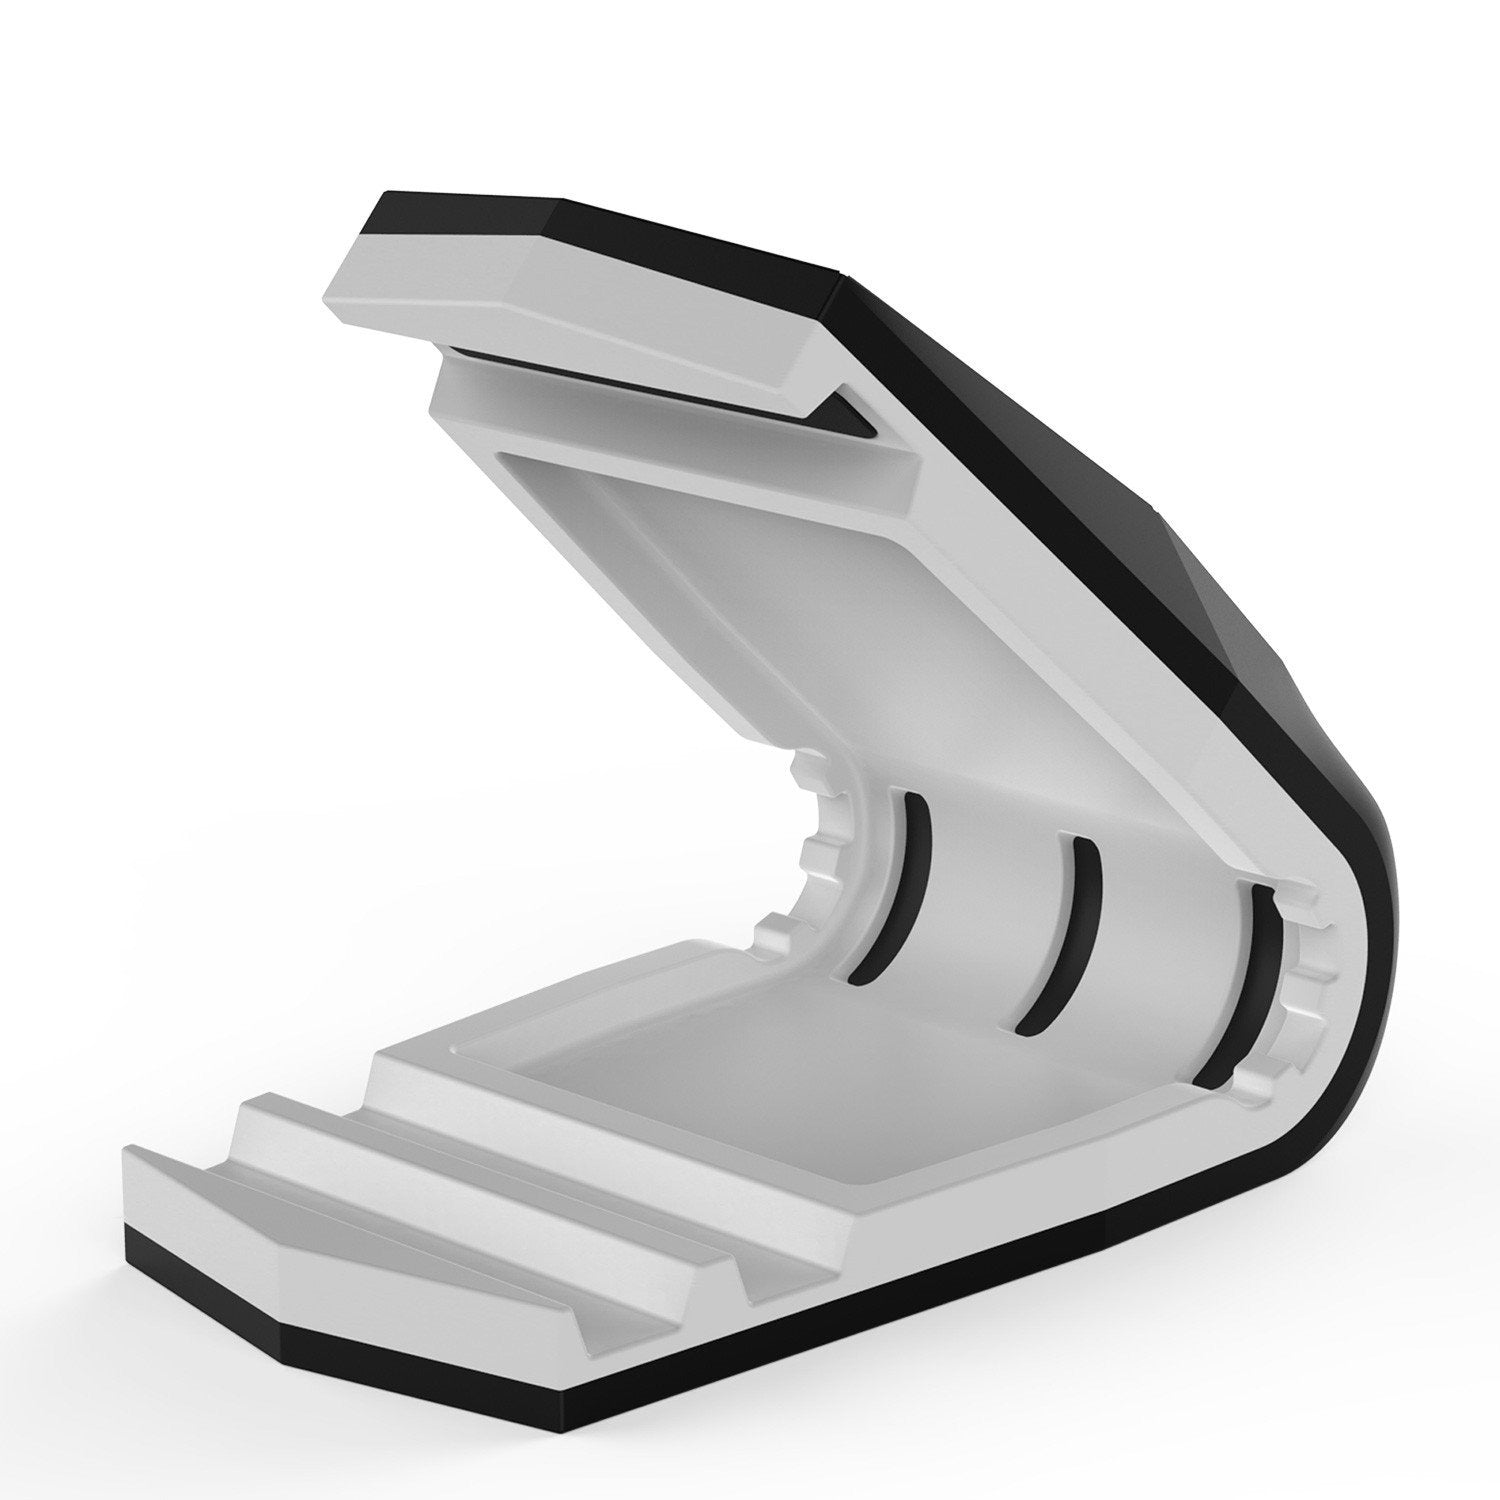 Viper Car Phone Holder White, Universal Dashboard Mount for all Smartphones